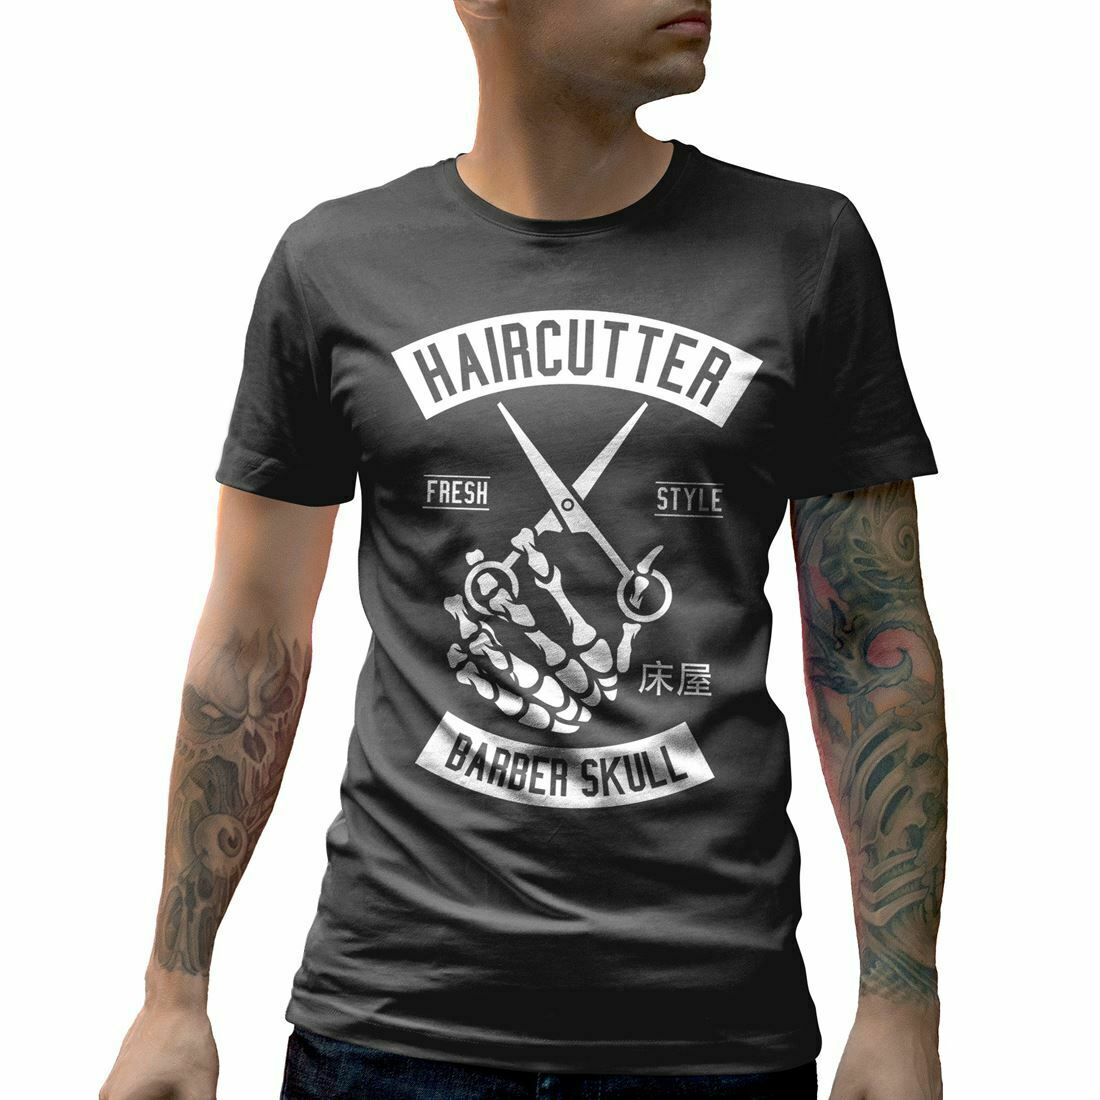 A237C Mens Crew Neck T-Shirt Haircutter Barber Shop Bart Klassische Barbershop <font><b>Gro</b></font> image